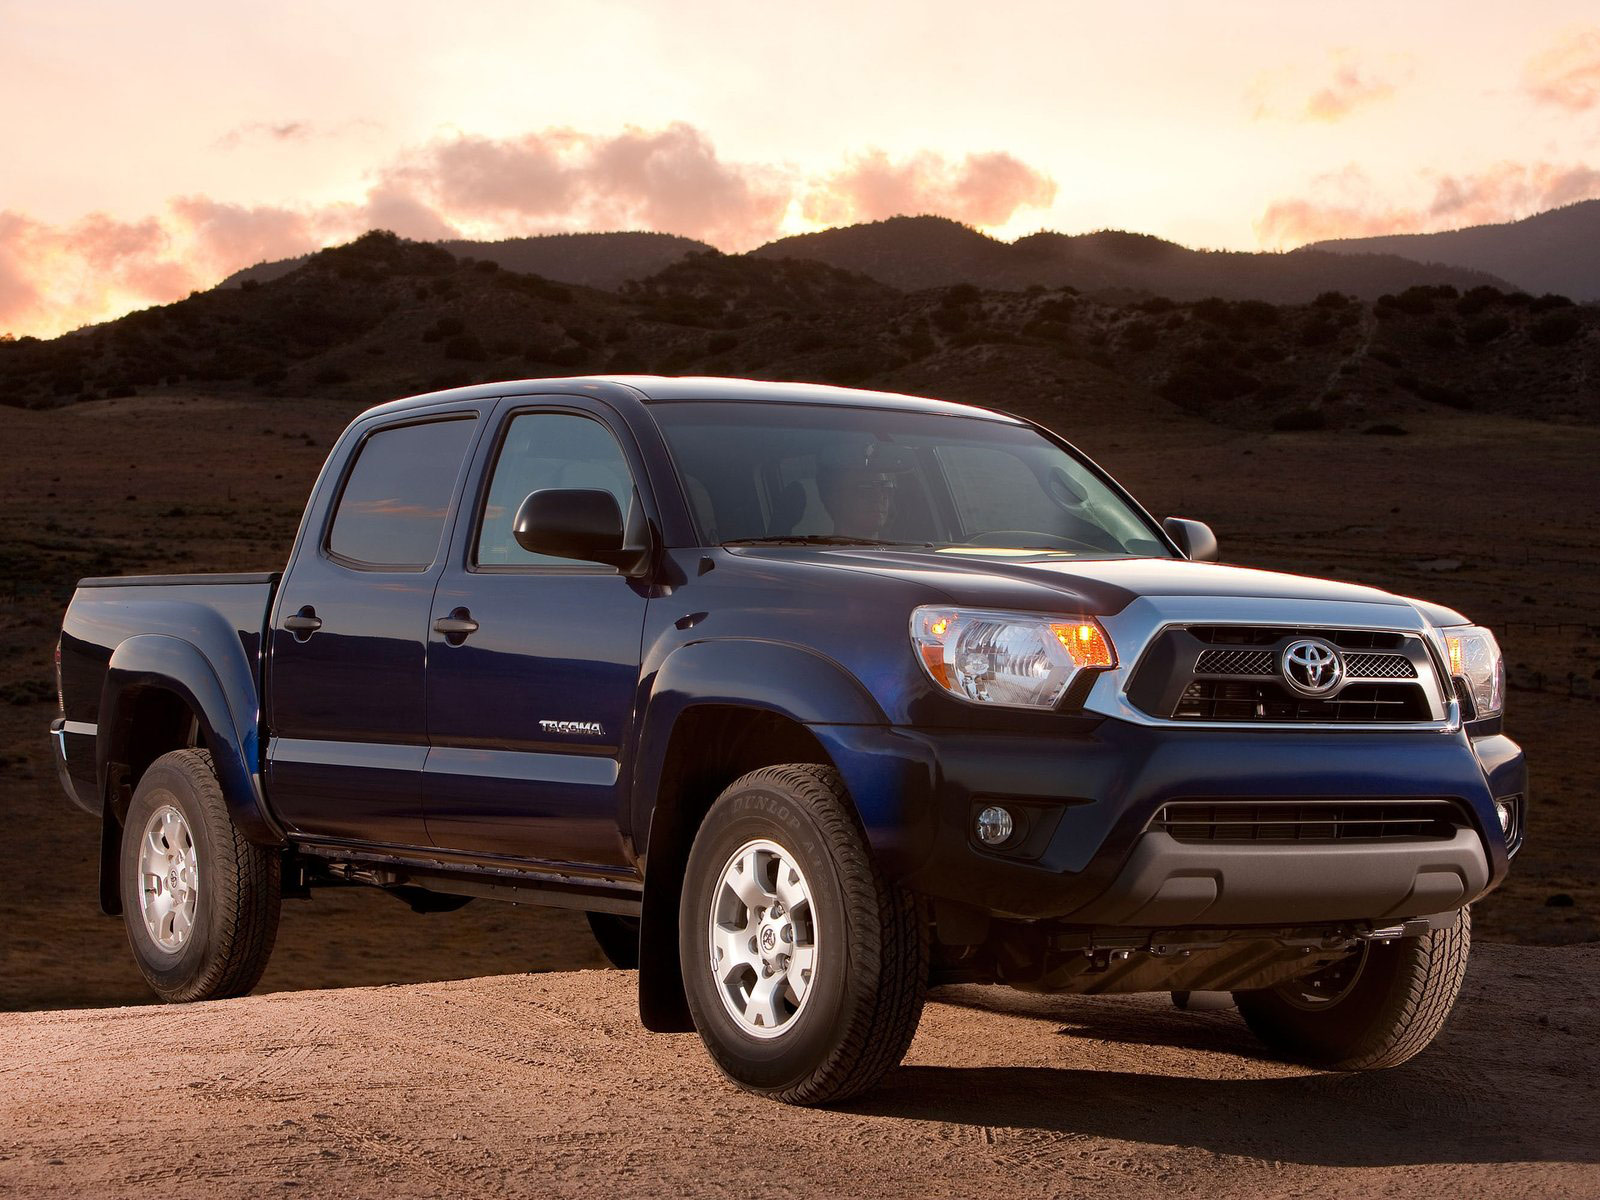 2012 toyota tacoma car accident lawyers wallpapers. Black Bedroom Furniture Sets. Home Design Ideas